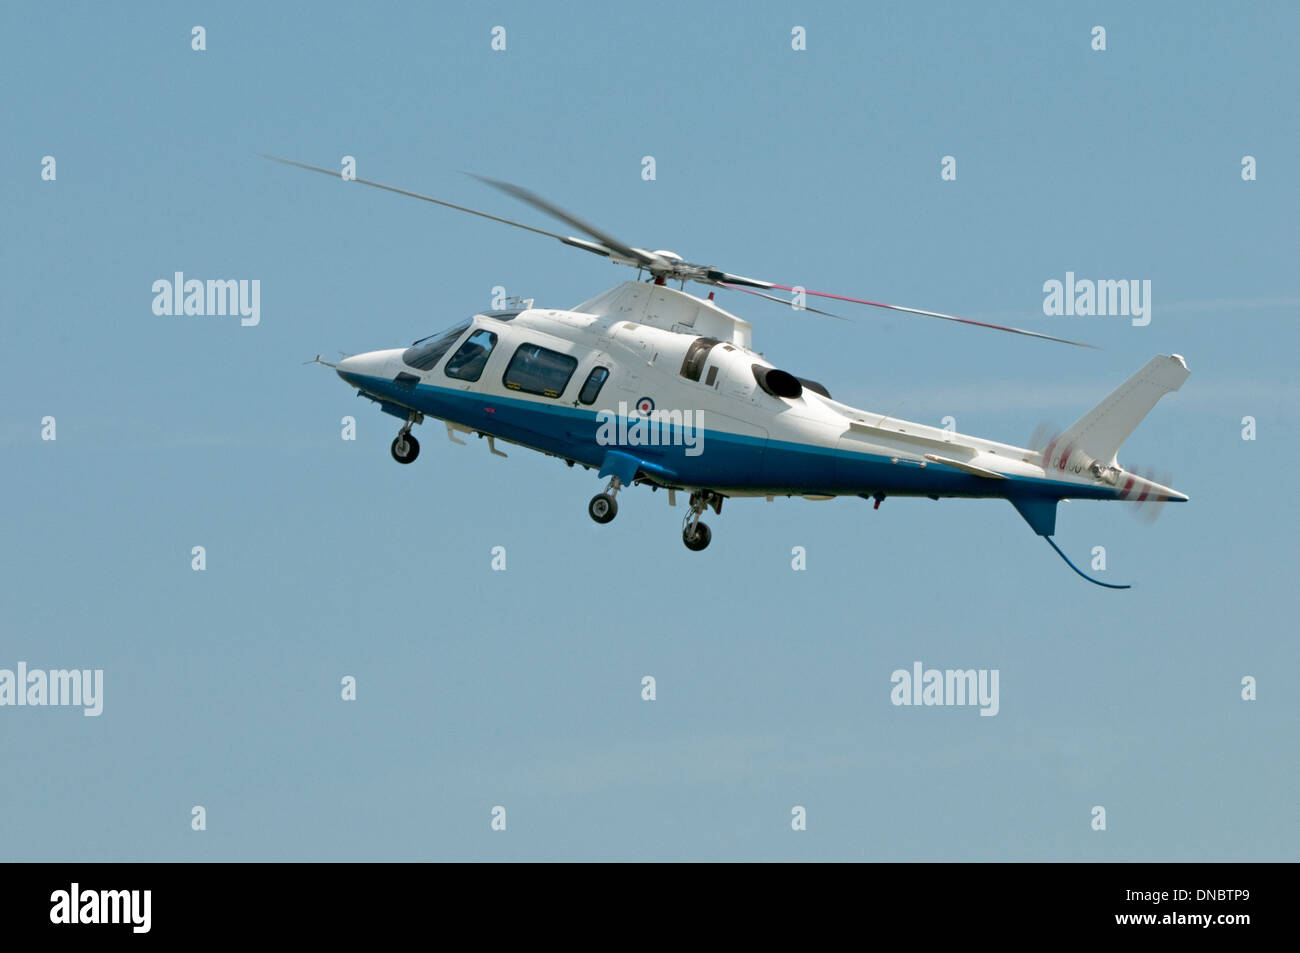 Agusta Westland AW109 Helicopter in flight - Stock Image